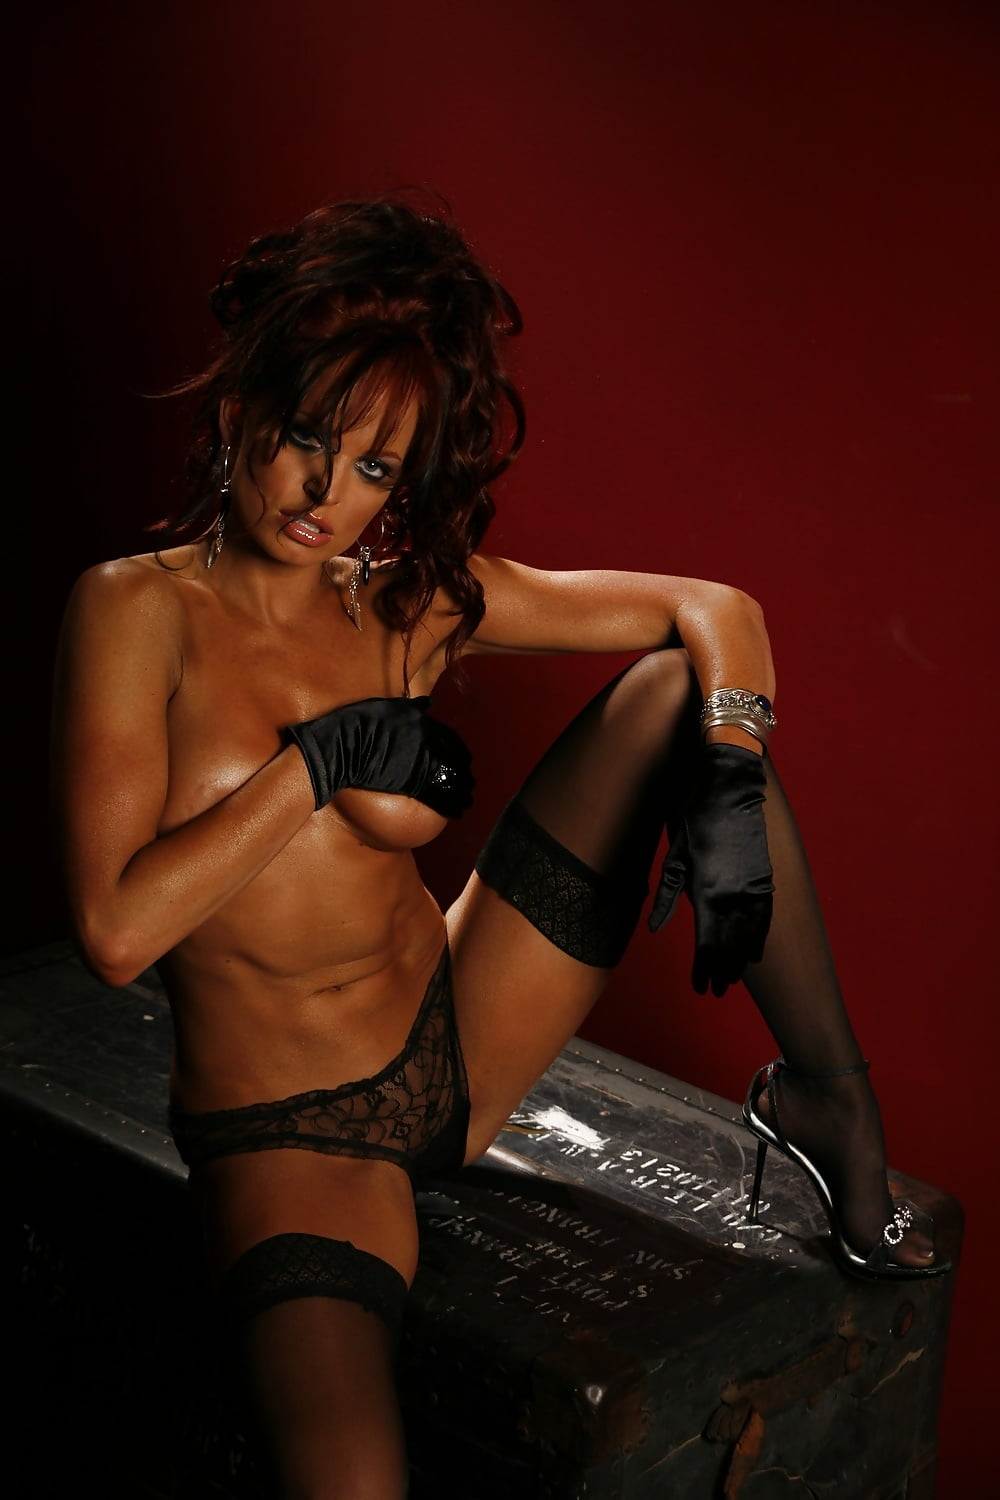 Christy hemme nude picture gallery